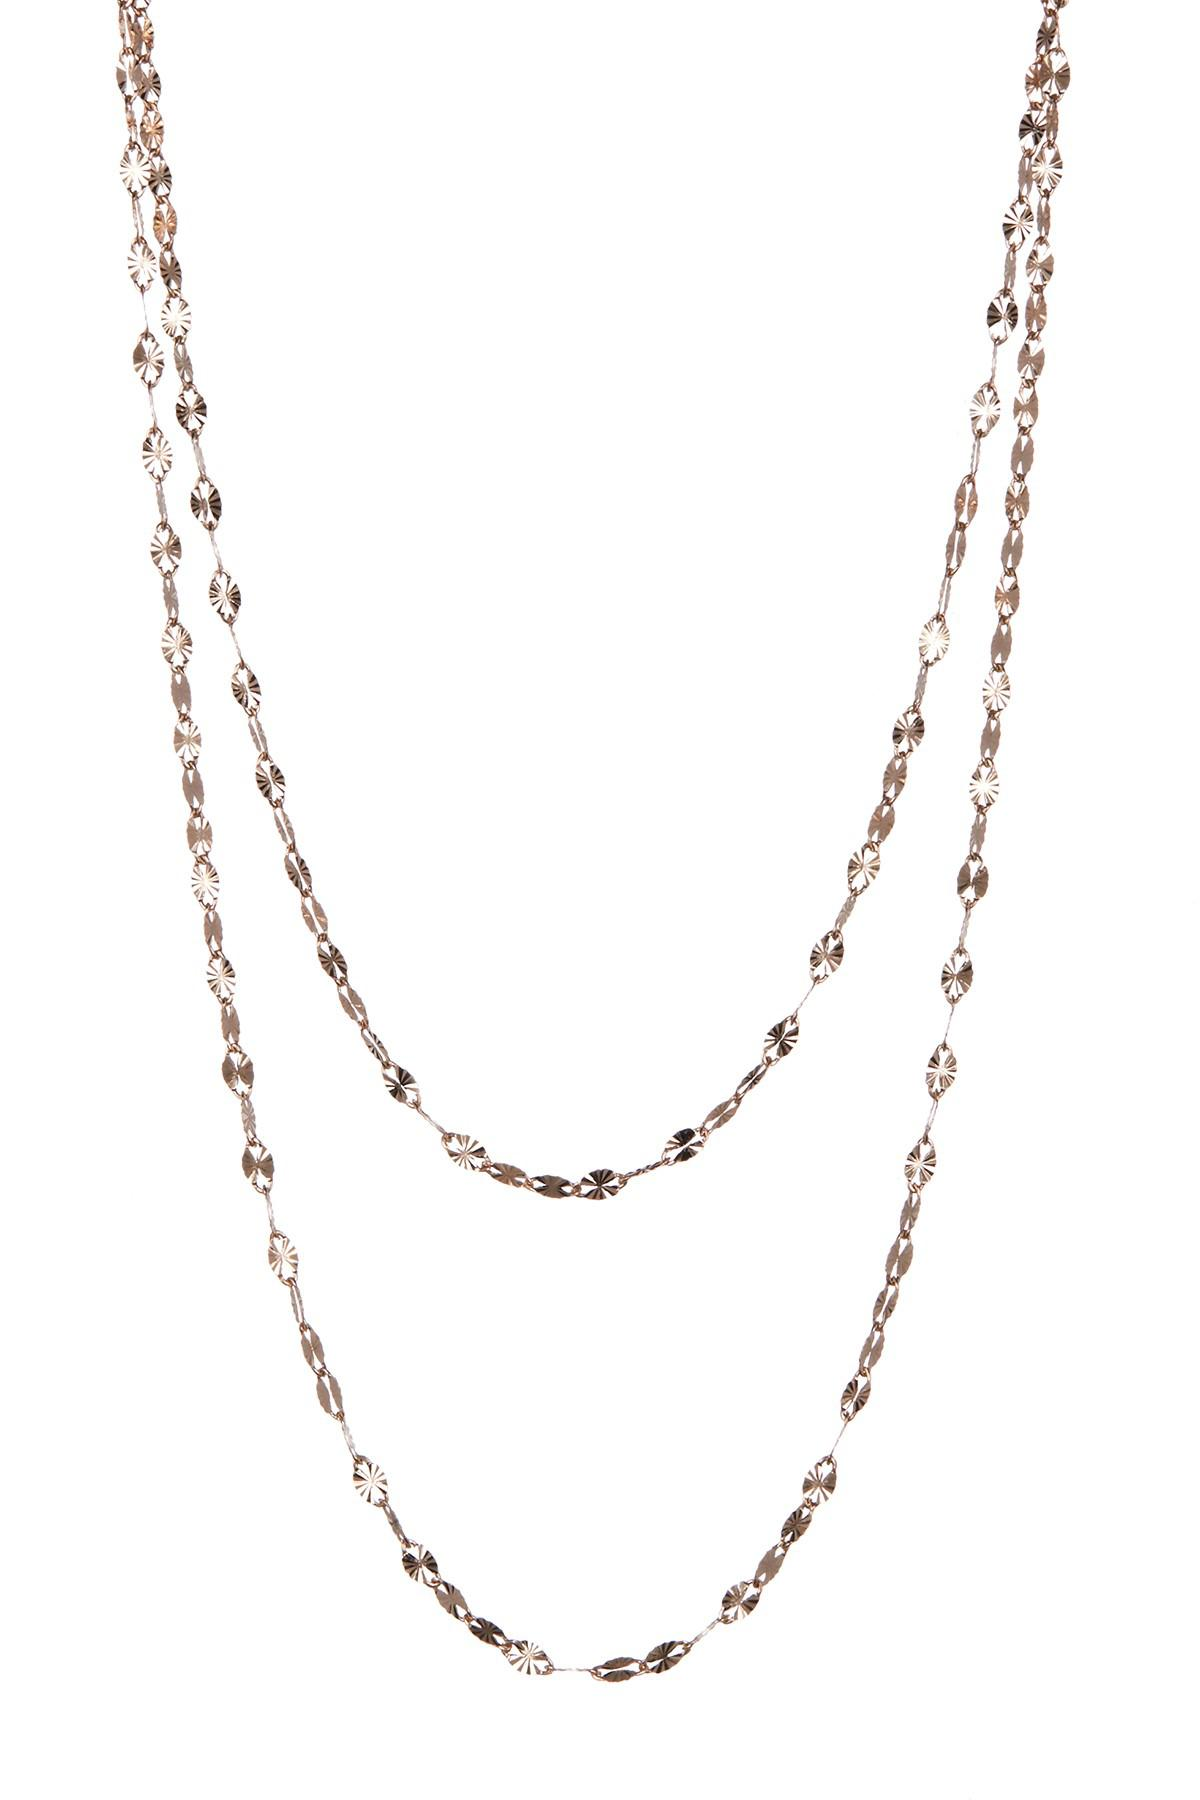 Lyst Lana Jewelry 14k Rose Gold Double Strand Necklace in Metallic